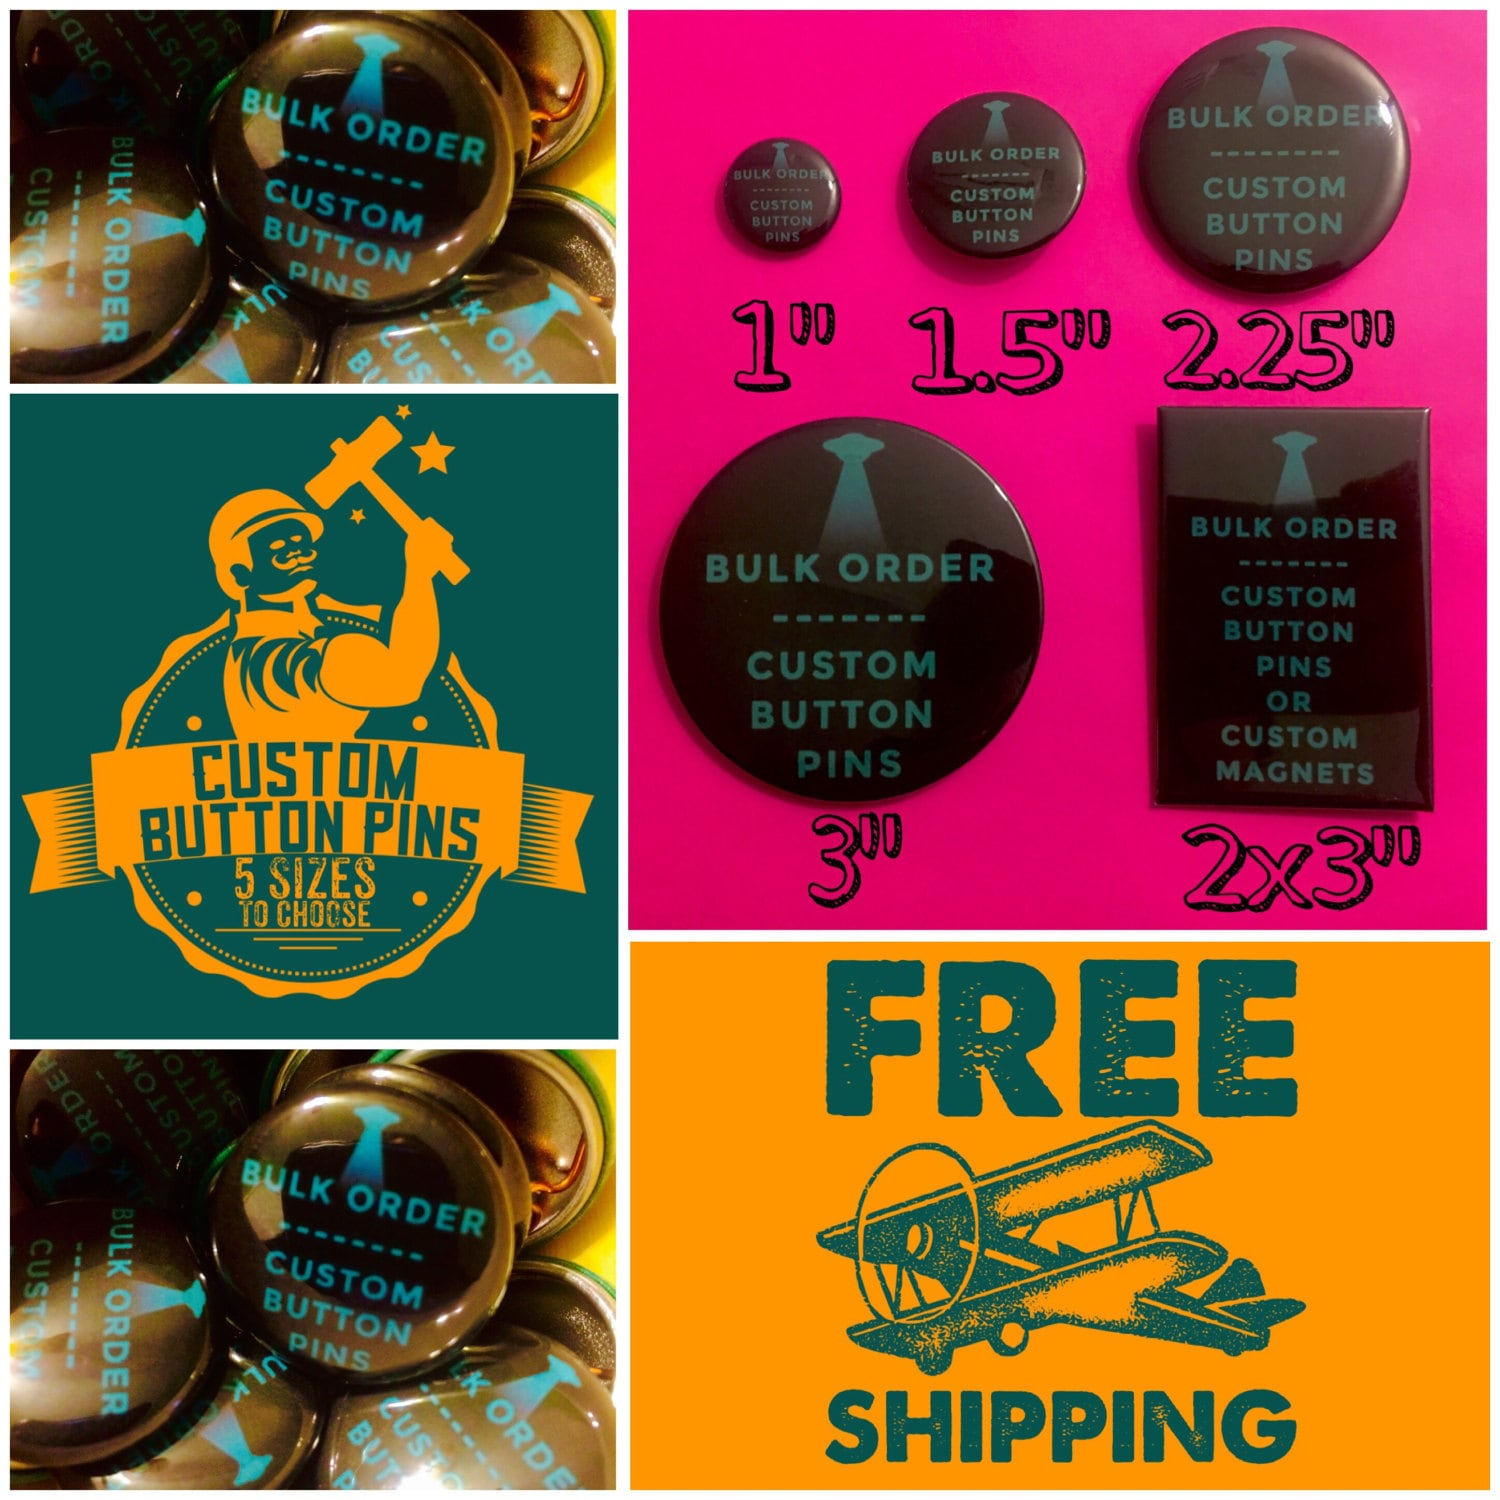 single custom button or magnet multiple sizes to choose from free